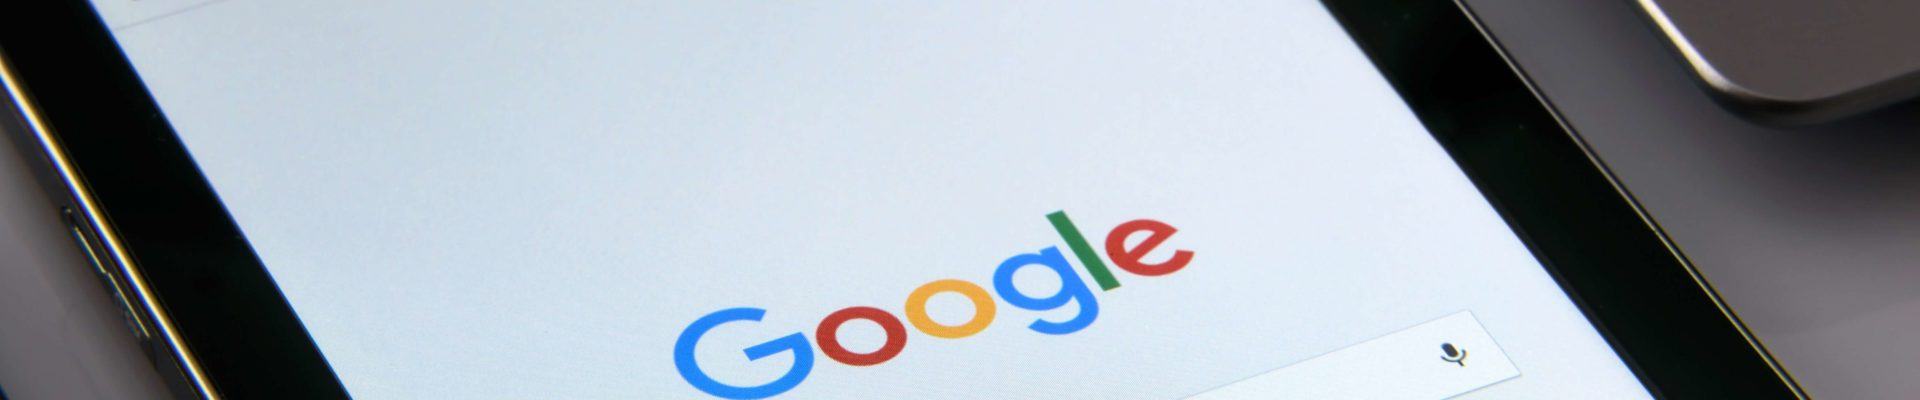 Google Finally Launches Lookout App for Visually Impaired People